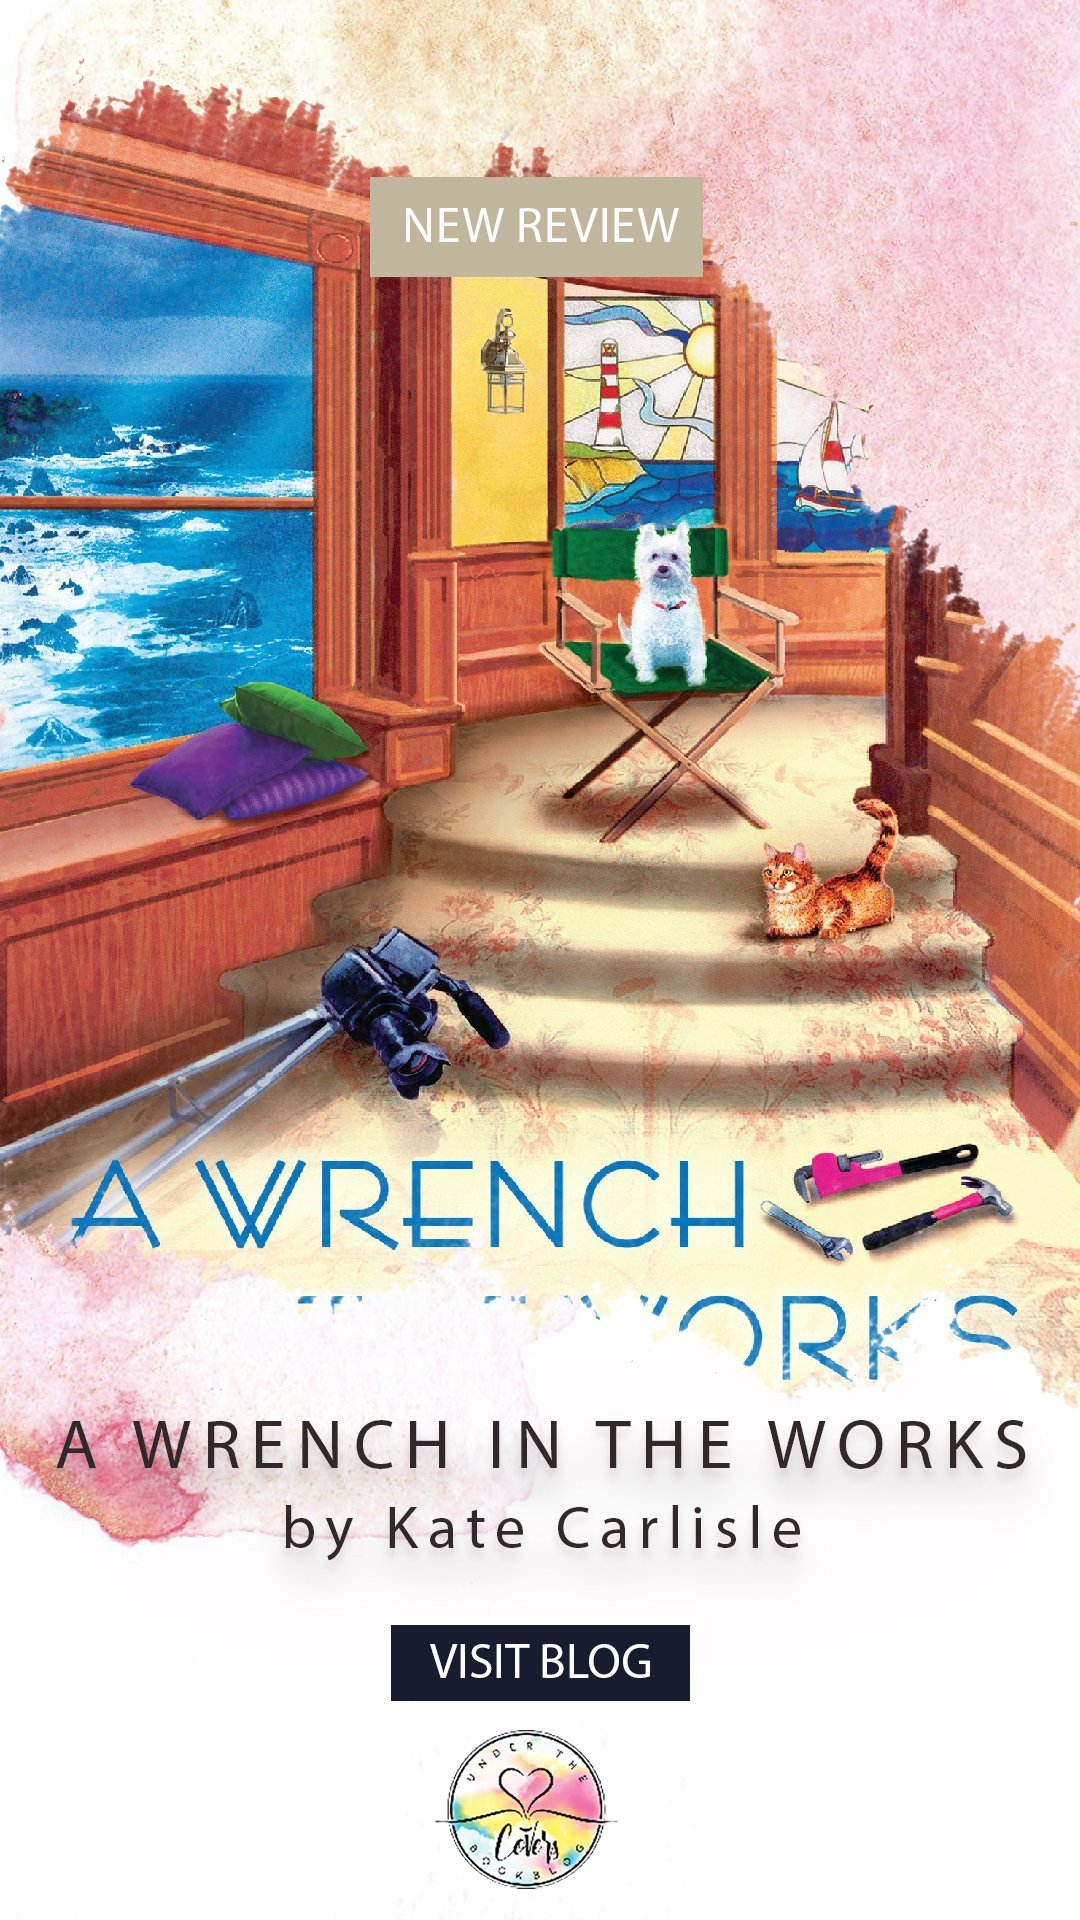 ARC Review: A Wrench in the Works by Kate Carlisle